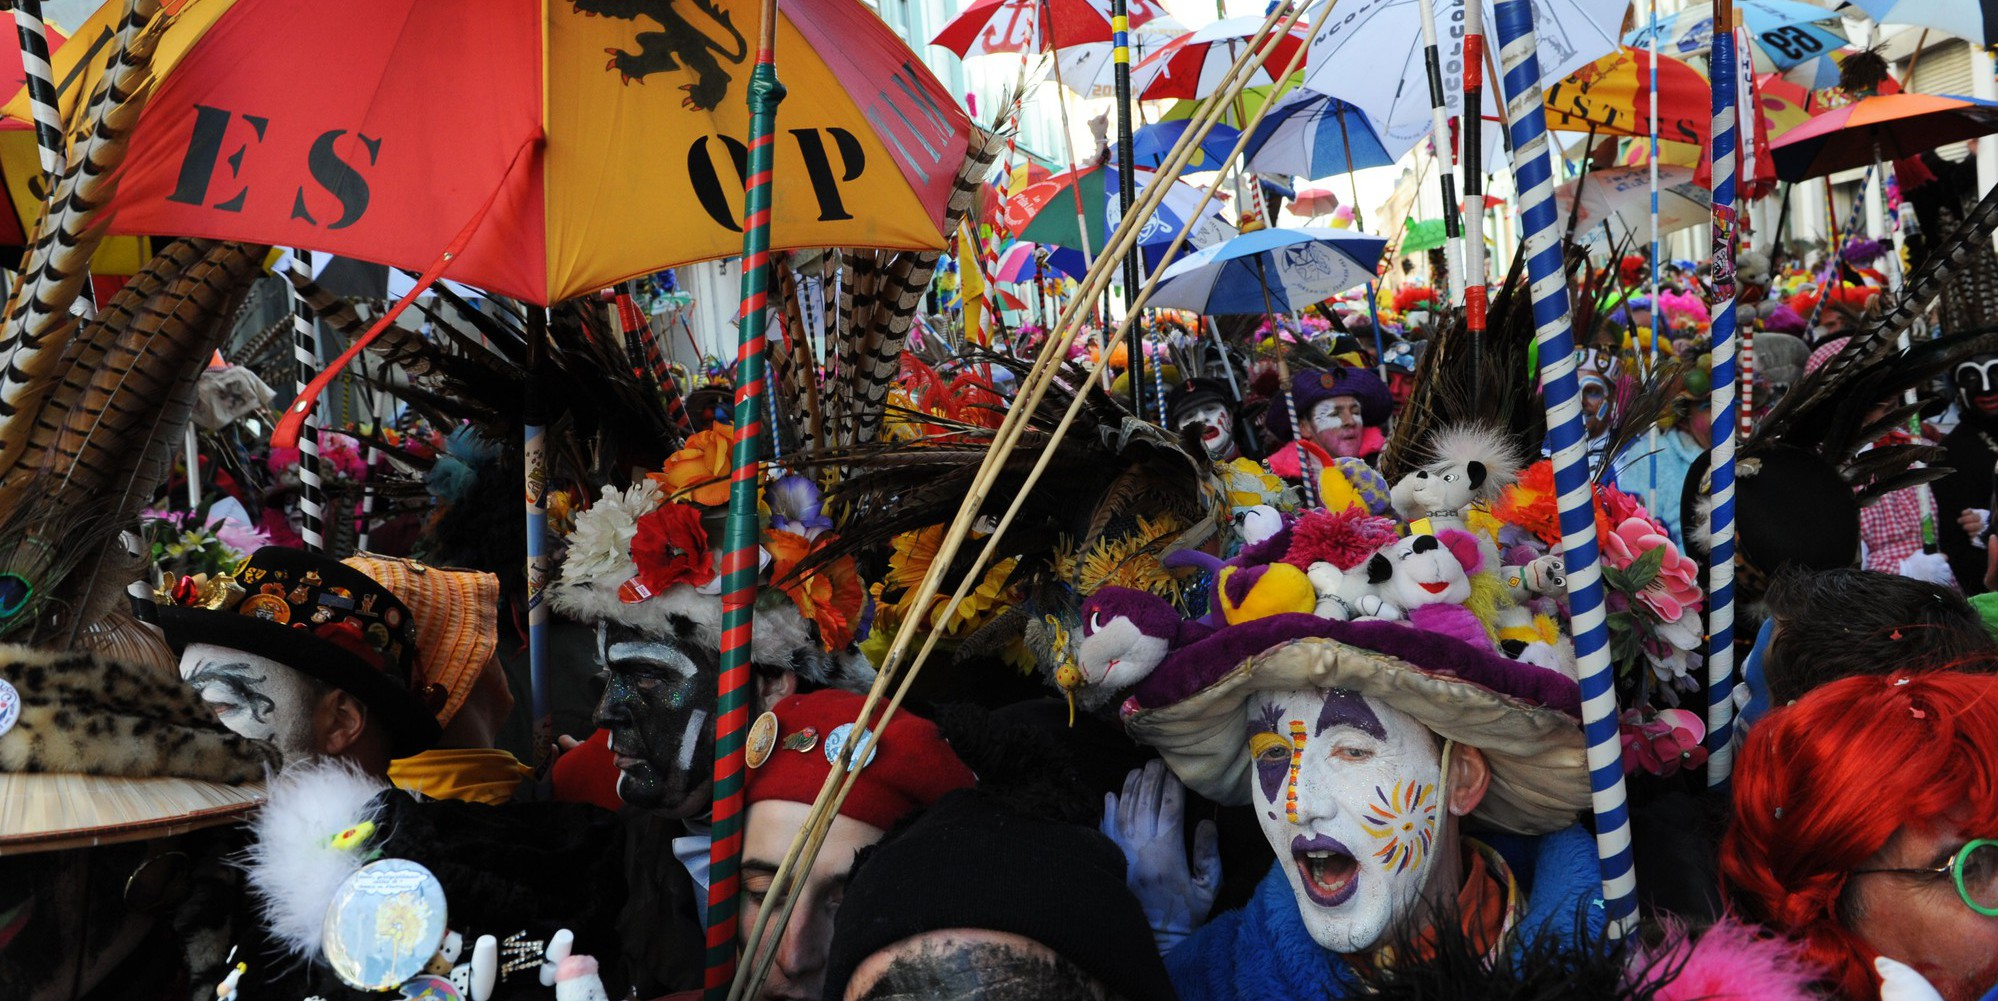 Illustration of the Carnival of Dunkirk (Dunkerque), northern France. The annual carnival began in the 18th century as a special feast before fishermen set sail for the dangerous Icelandic water to catch the lucrative cod./ALCALAYSARAH_1236.0244/Credit:Sarah ALCALAY/SIPA/1601181638